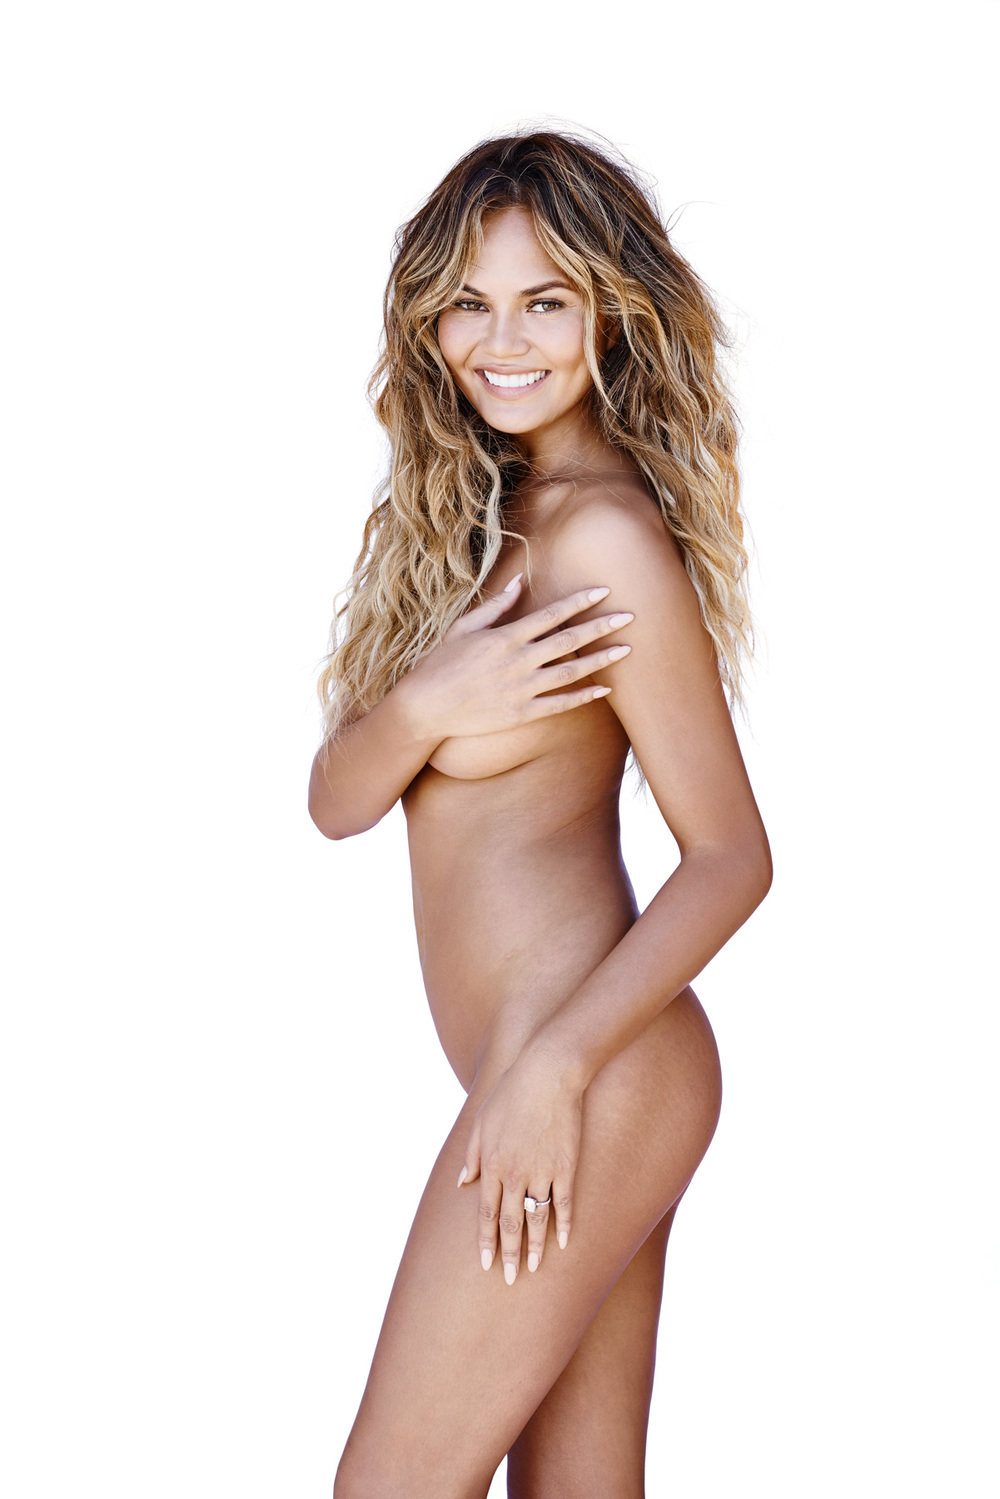 Women's Health Magazine: The Naked Issue